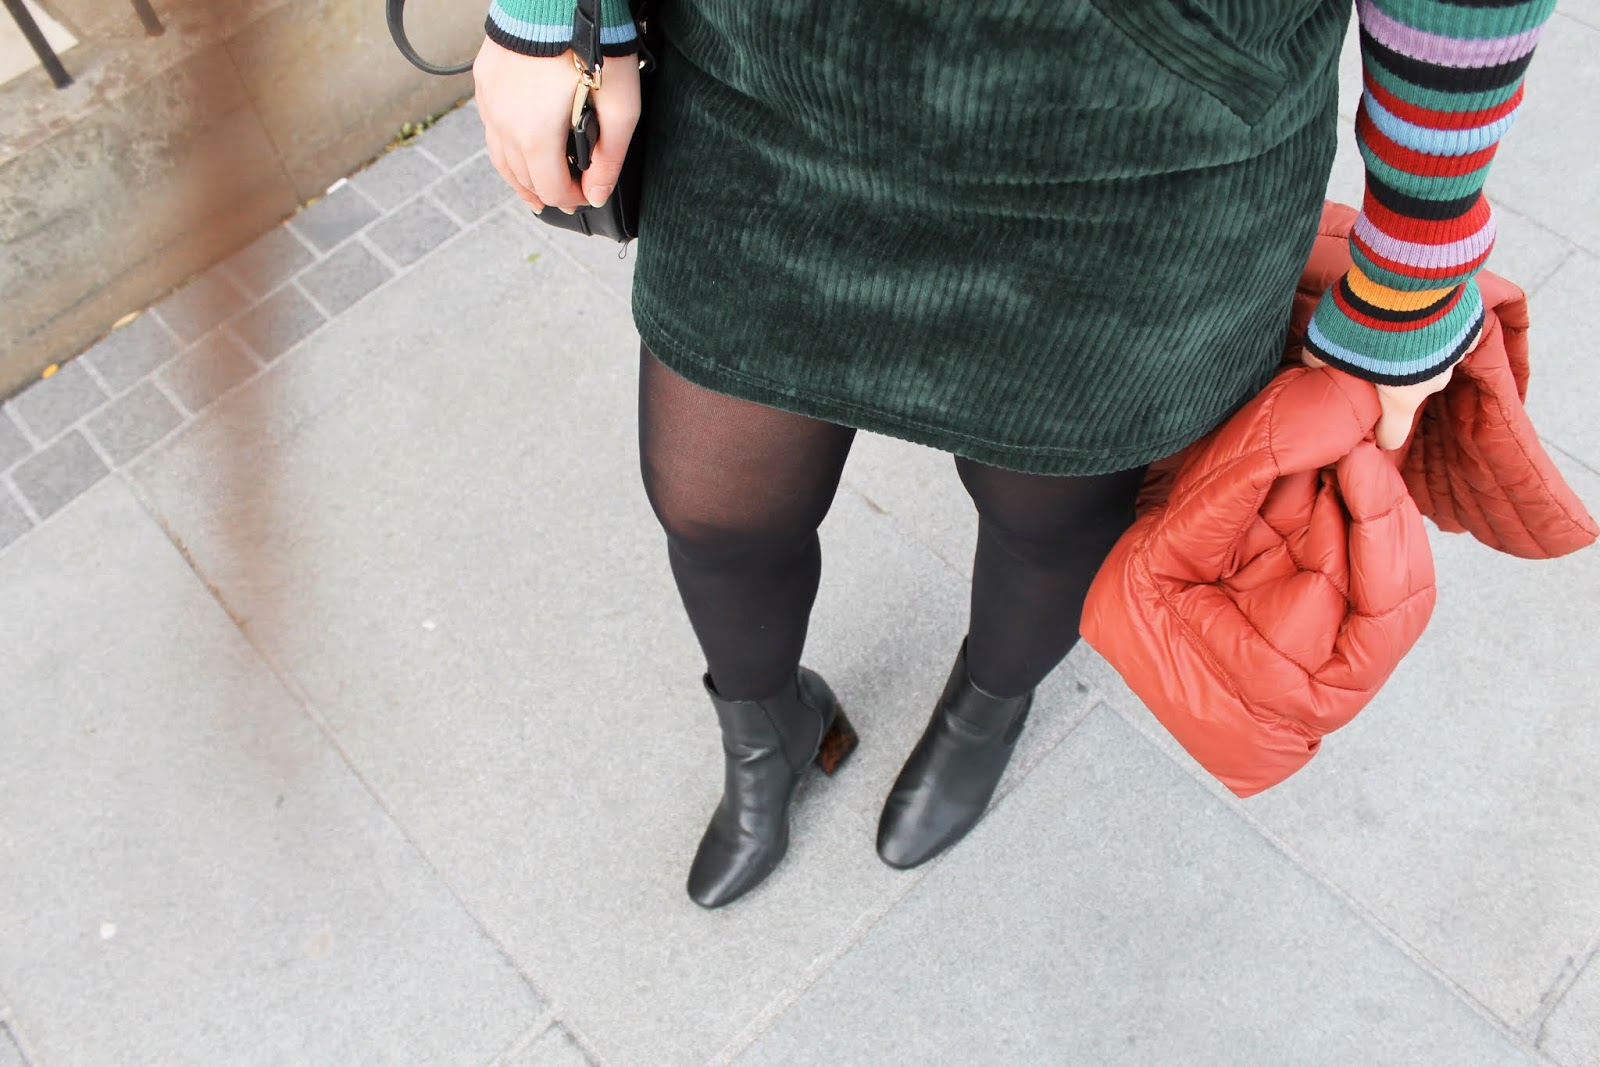 Green Cord Pinafore Dress, Striped Top and Boots